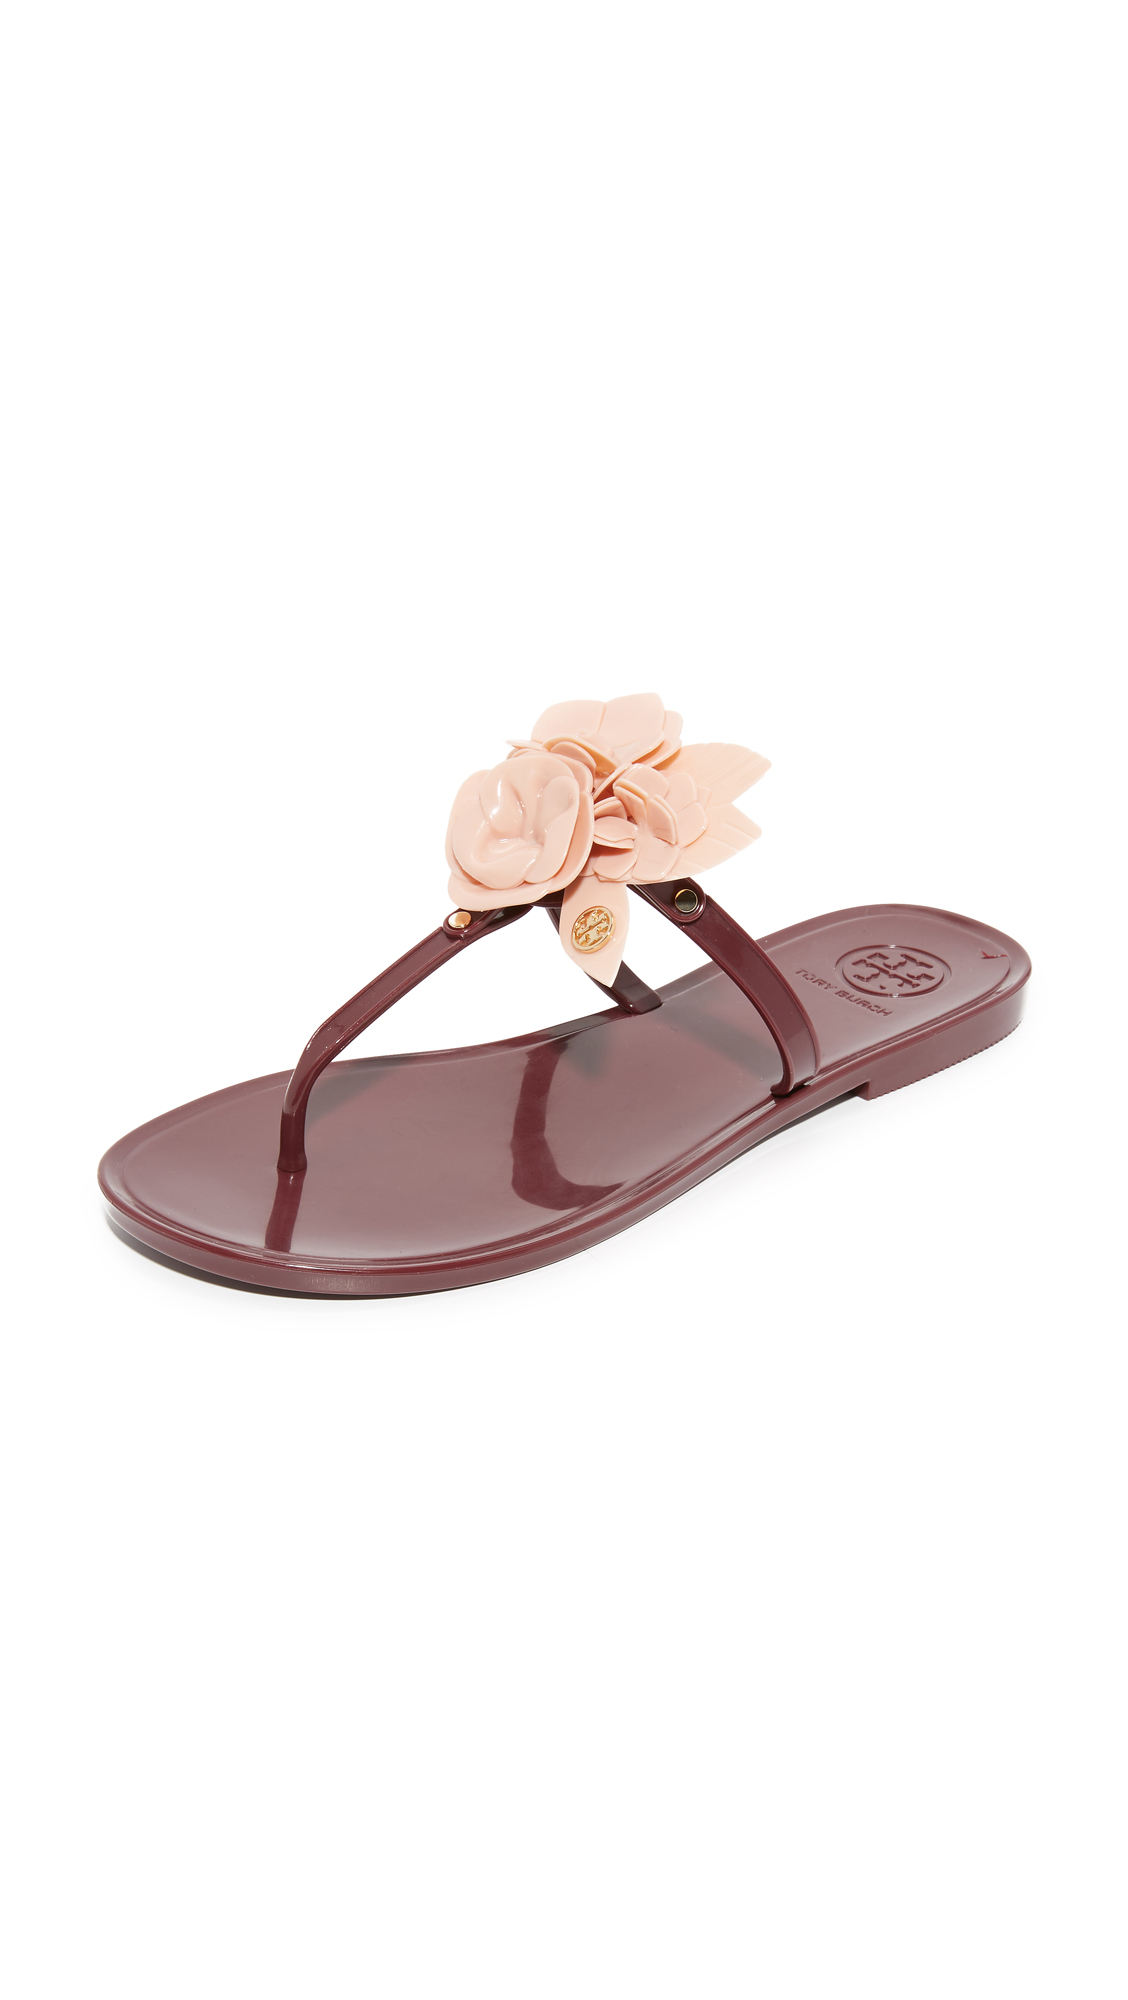 3dee90fce800 Tory Burch Blossom Jelly Thong Sandals